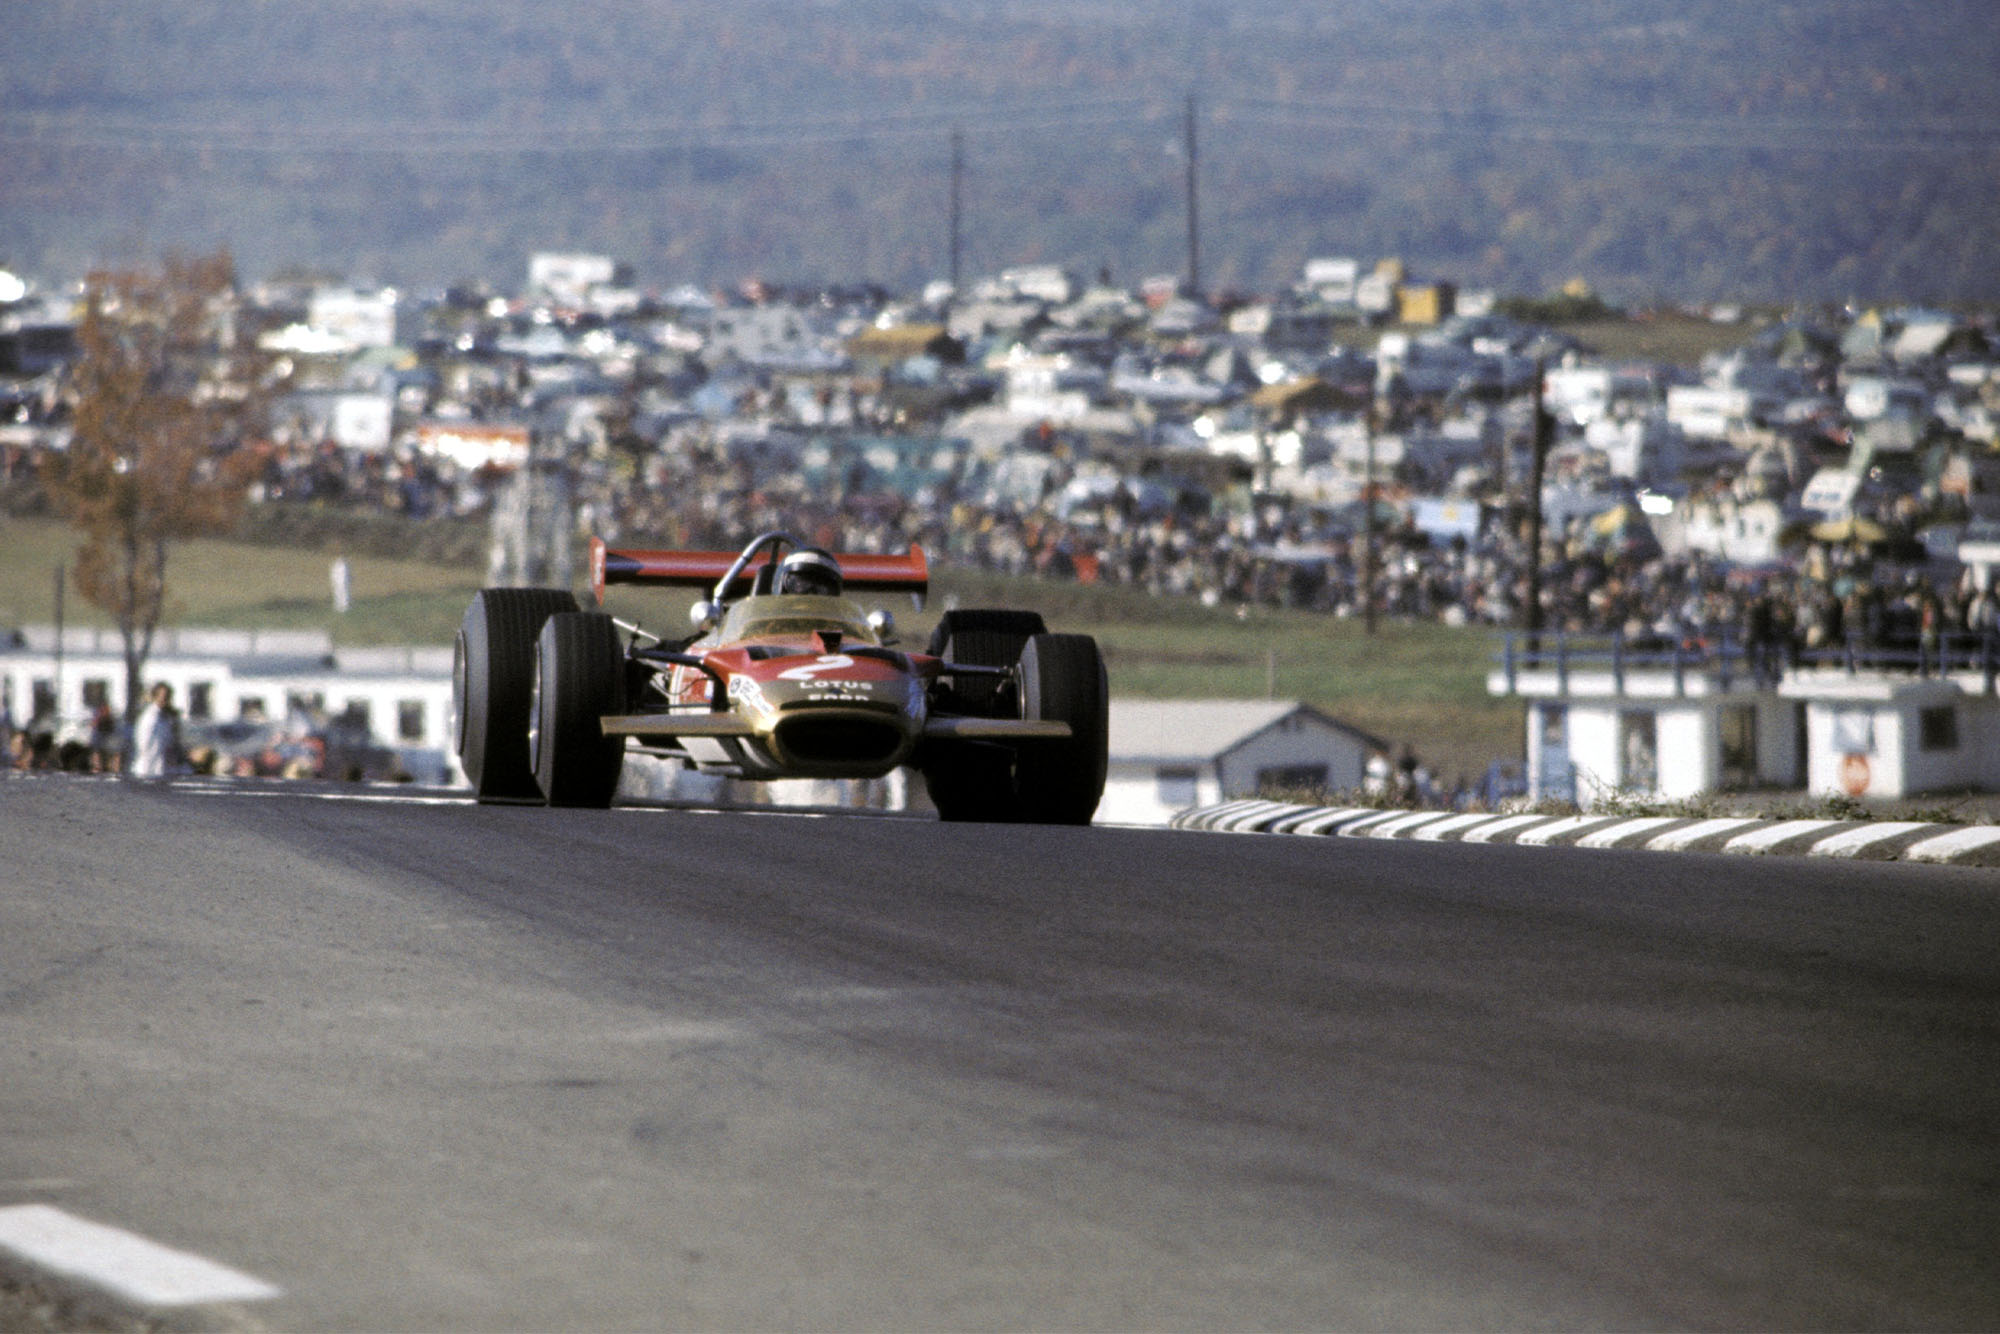 Jochen Rindt on his way to victory at the 1969 United States Grand Prix